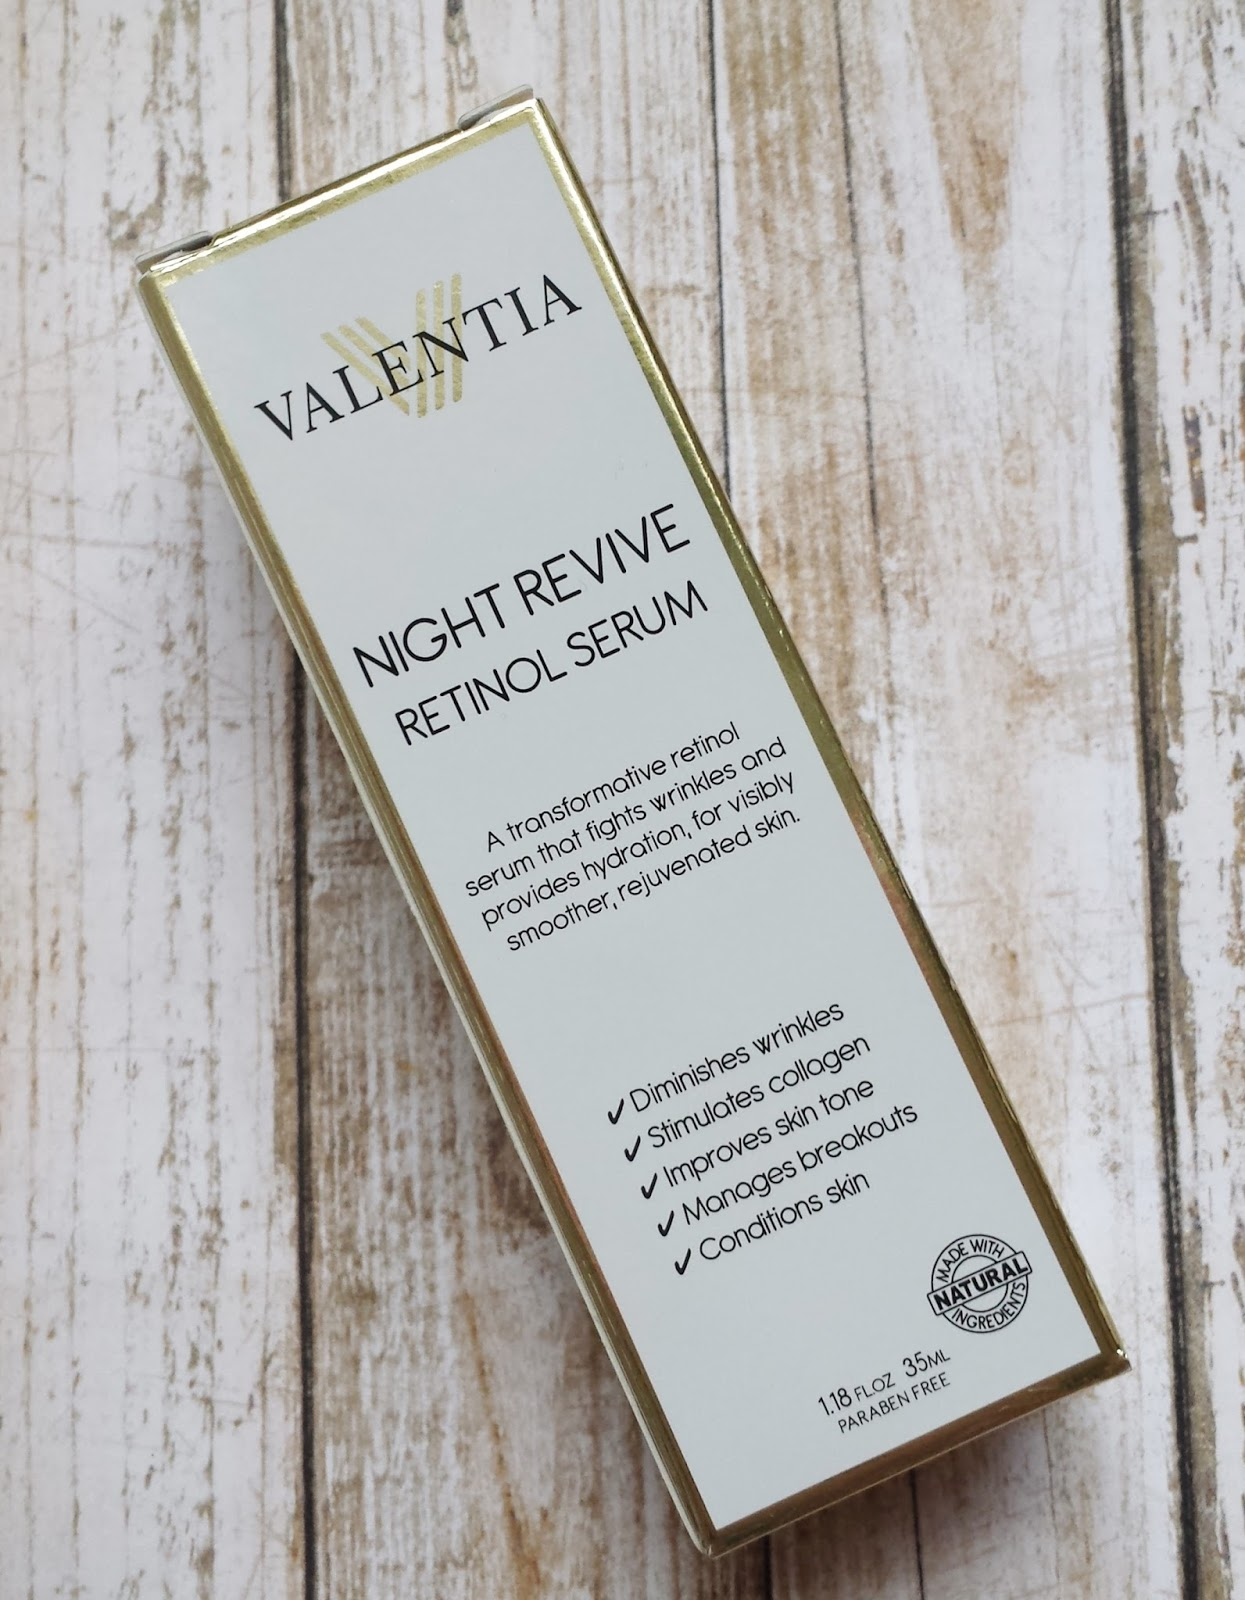 Valentia Night Revive Retinol Serum Review